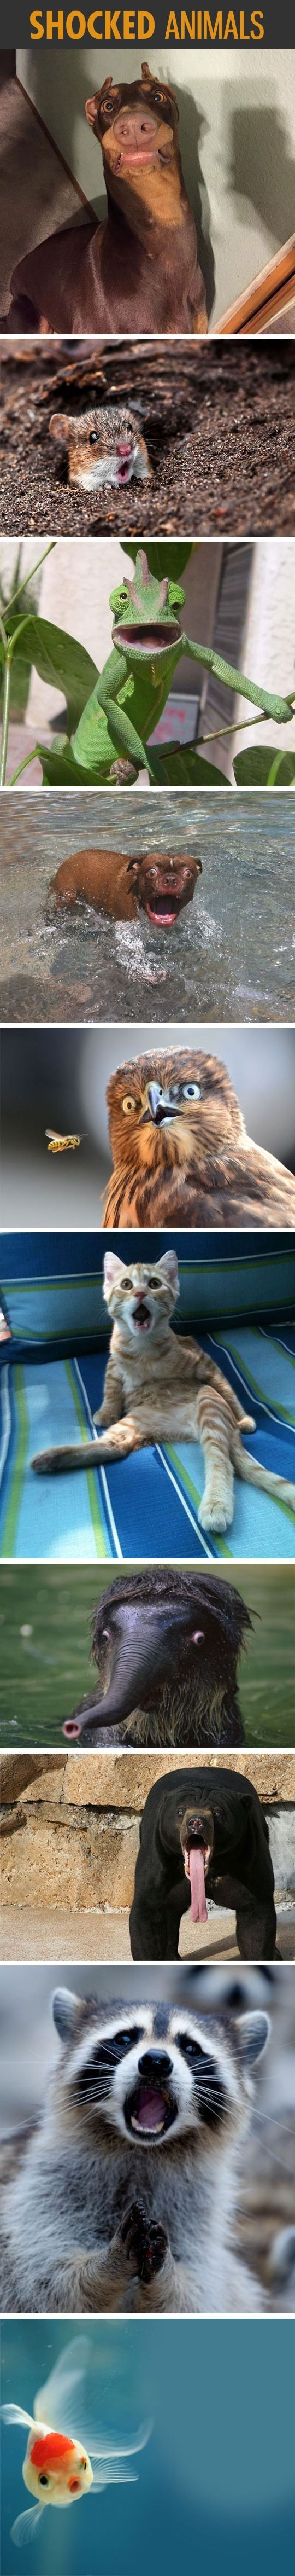 Shocked Animals.  Oh the hilarity!